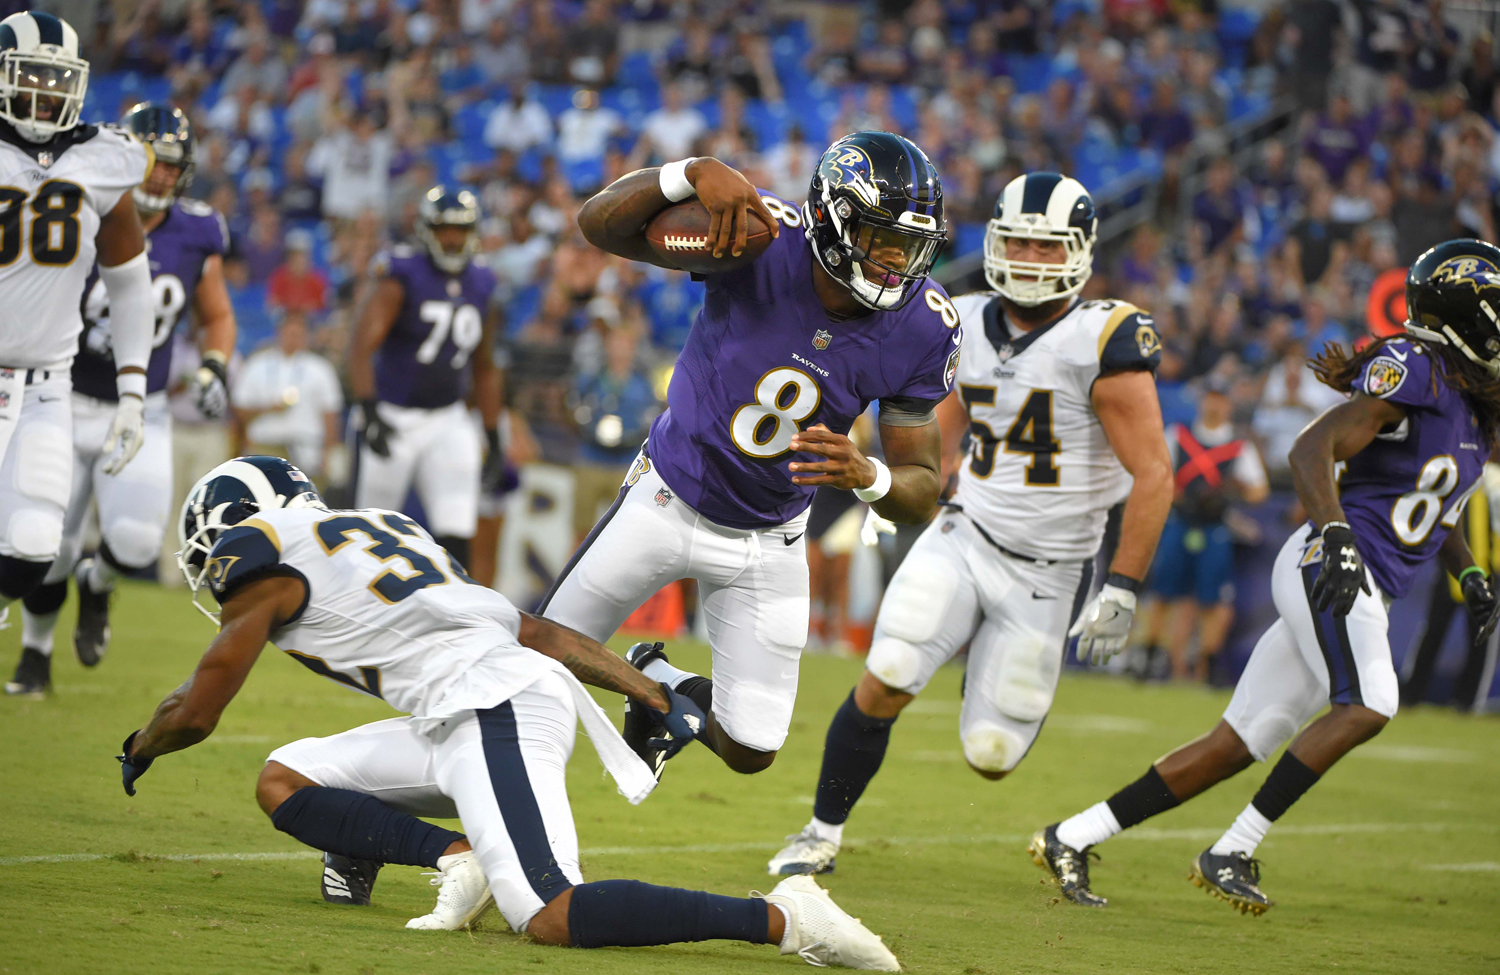 Baltimore Ravens quarterback Lamar Jackson (8) scores a touchdown after making a cut on the Los Angeles Rams' Troy Hill (32) in the first half during a preseason game at M&T Bank Stadium in Baltimore on Aug. 9.